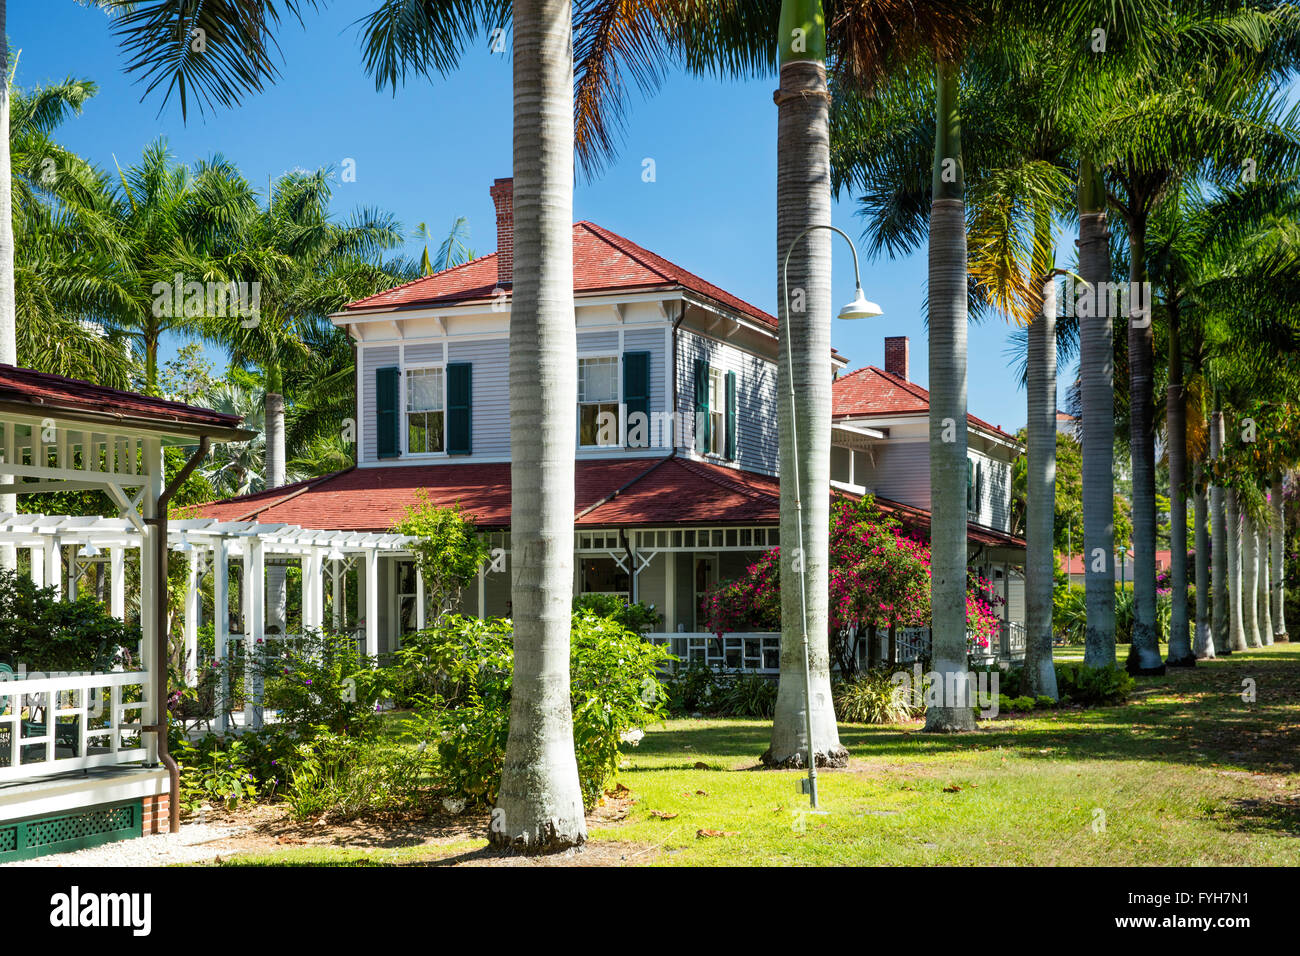 'Seminole Lodge' - winter home of inventor Thomas Edison, Ft Myers, Florida, USA - Stock Image